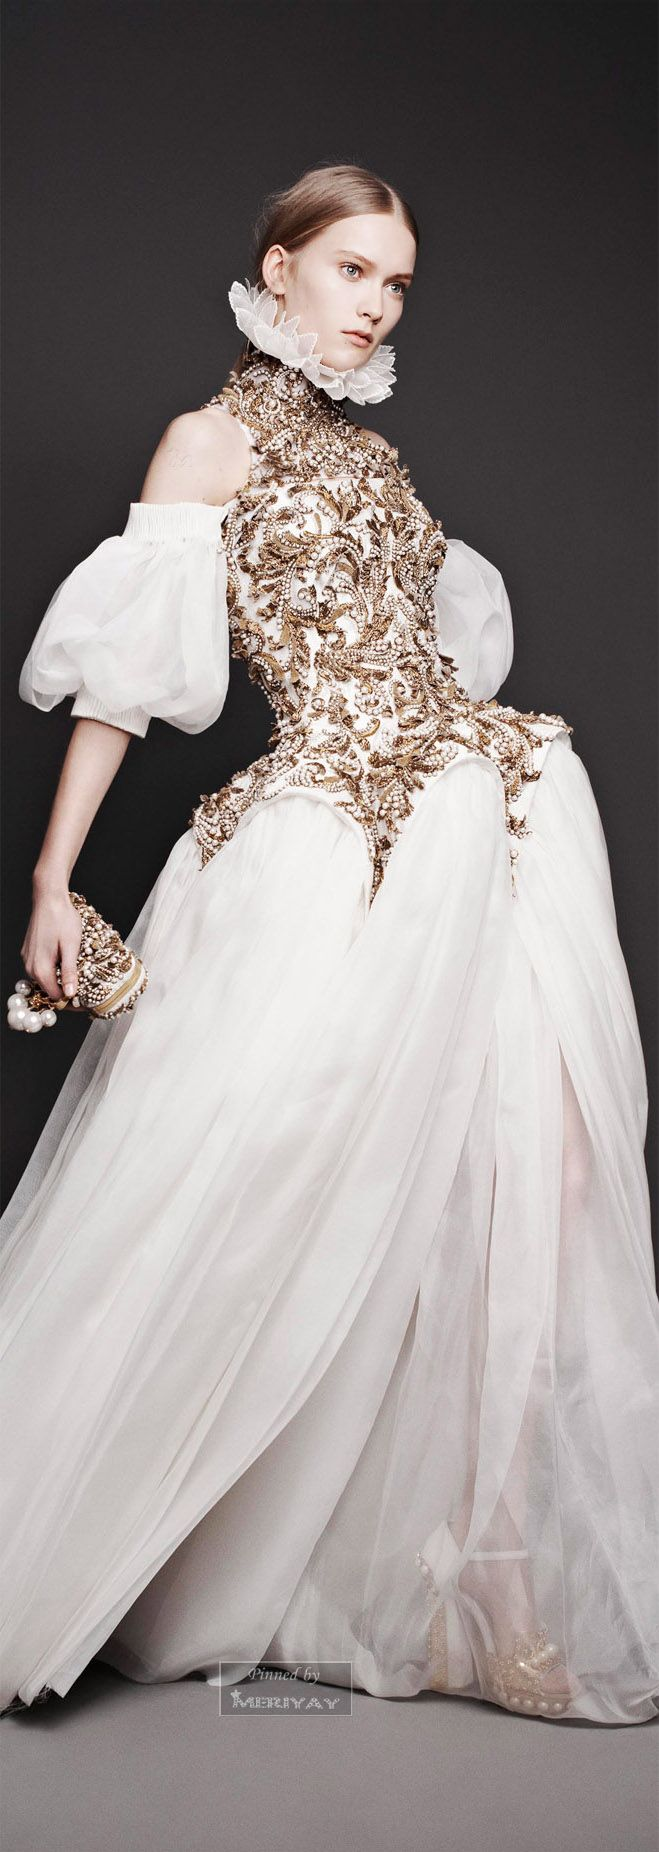 Alexander McQueen. #baroque Suggestion for illustration practice: change her skin tone.